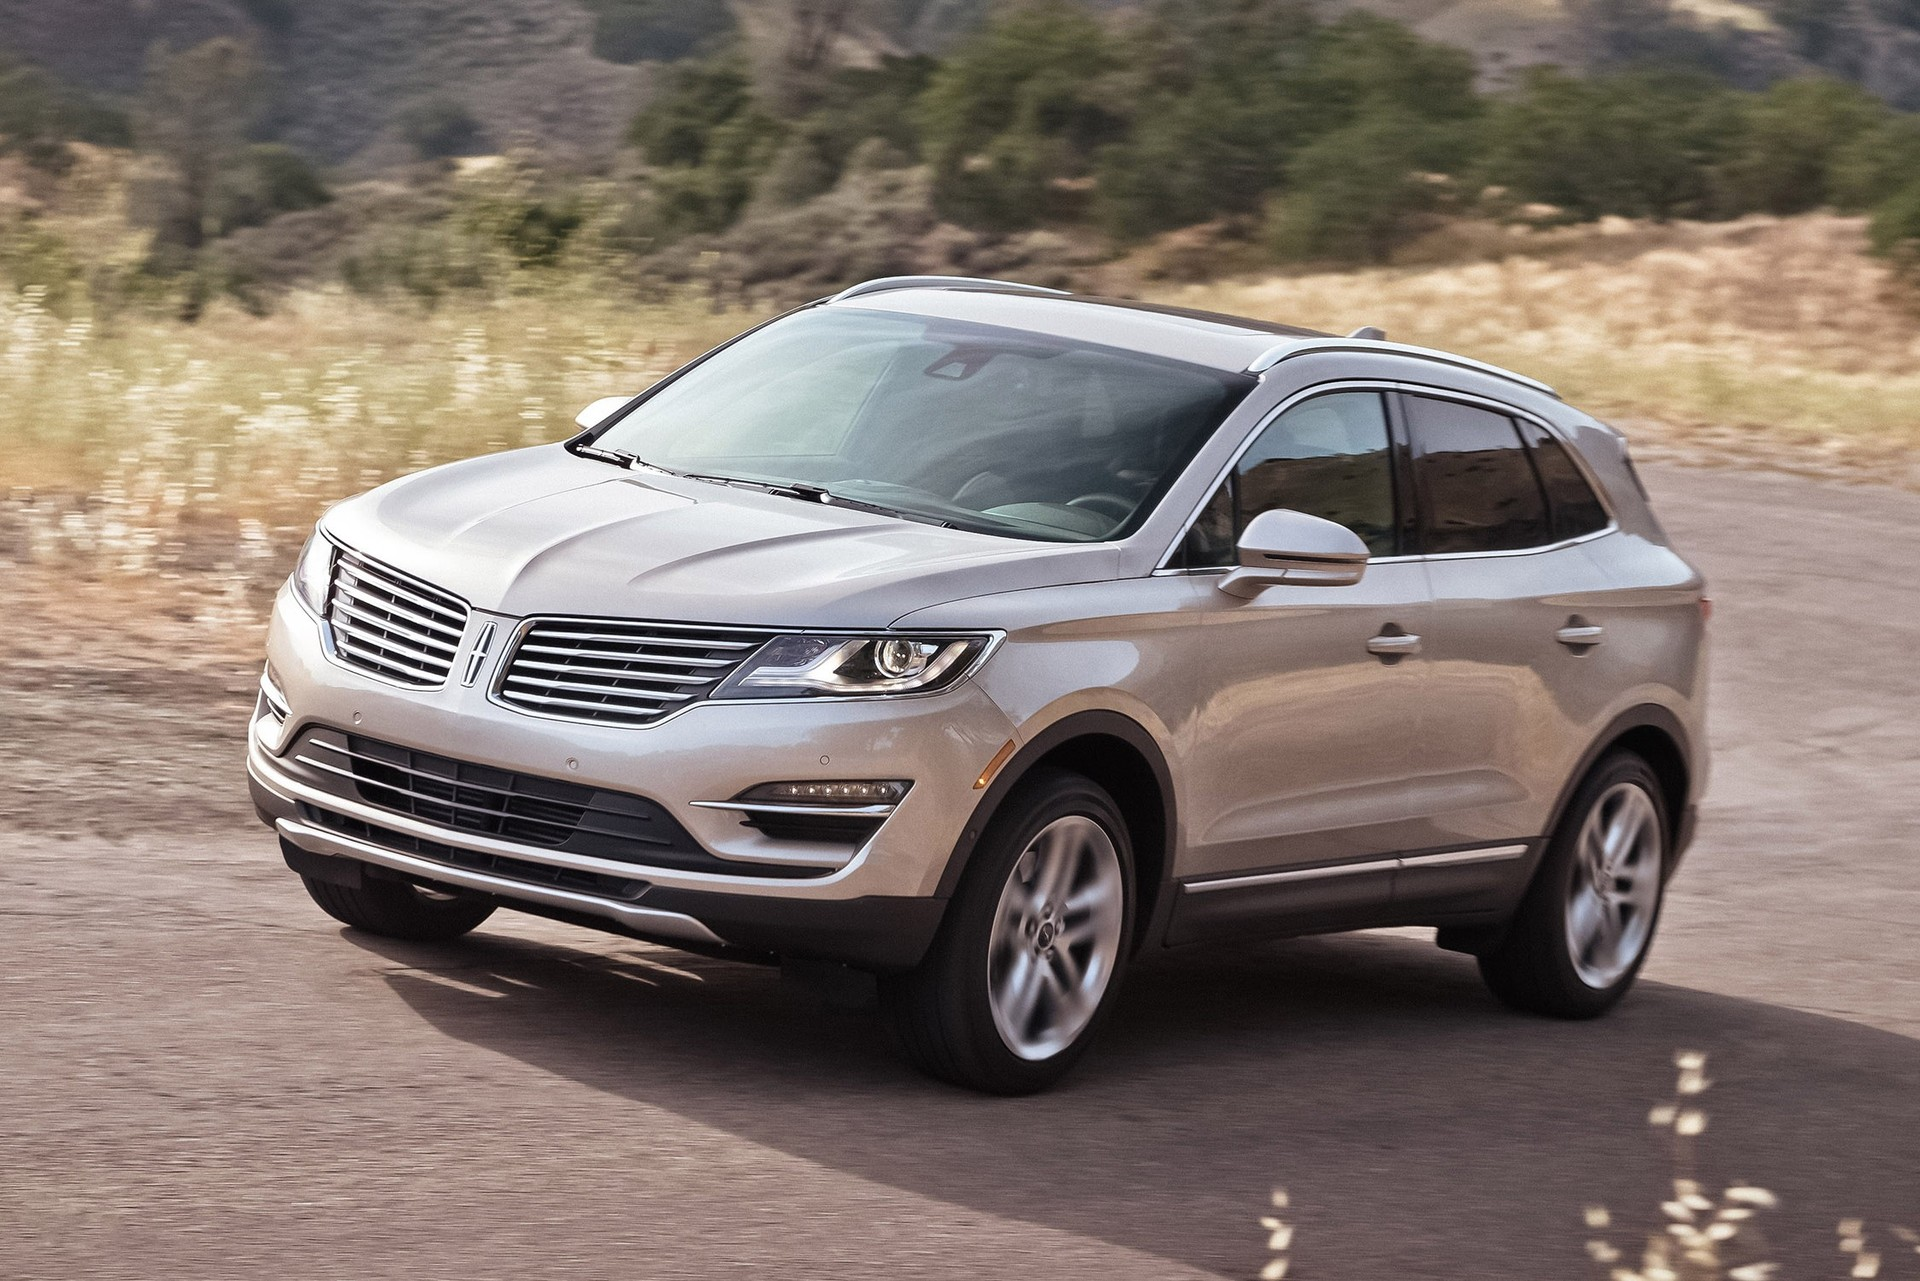 2015 Lincoln Mkc Review Ratings Specs Prices And